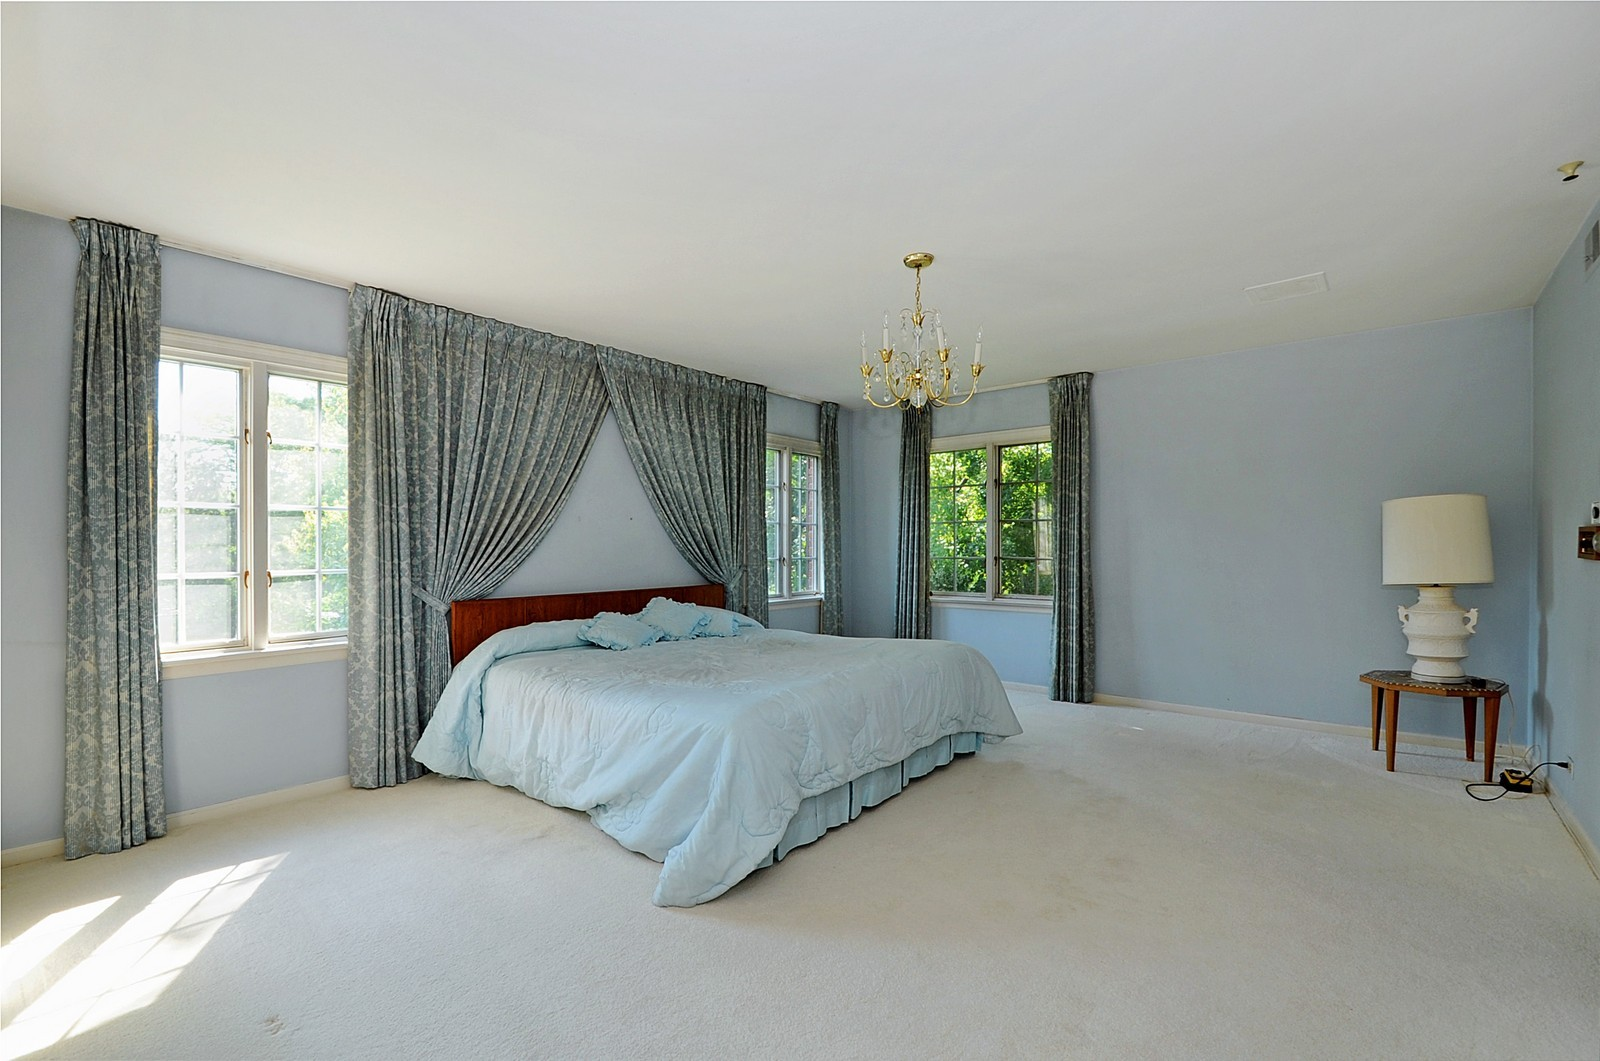 Real Estate Photography - 430 Pebblebrook, Northfield, IL, 60093 - Master Bedroom